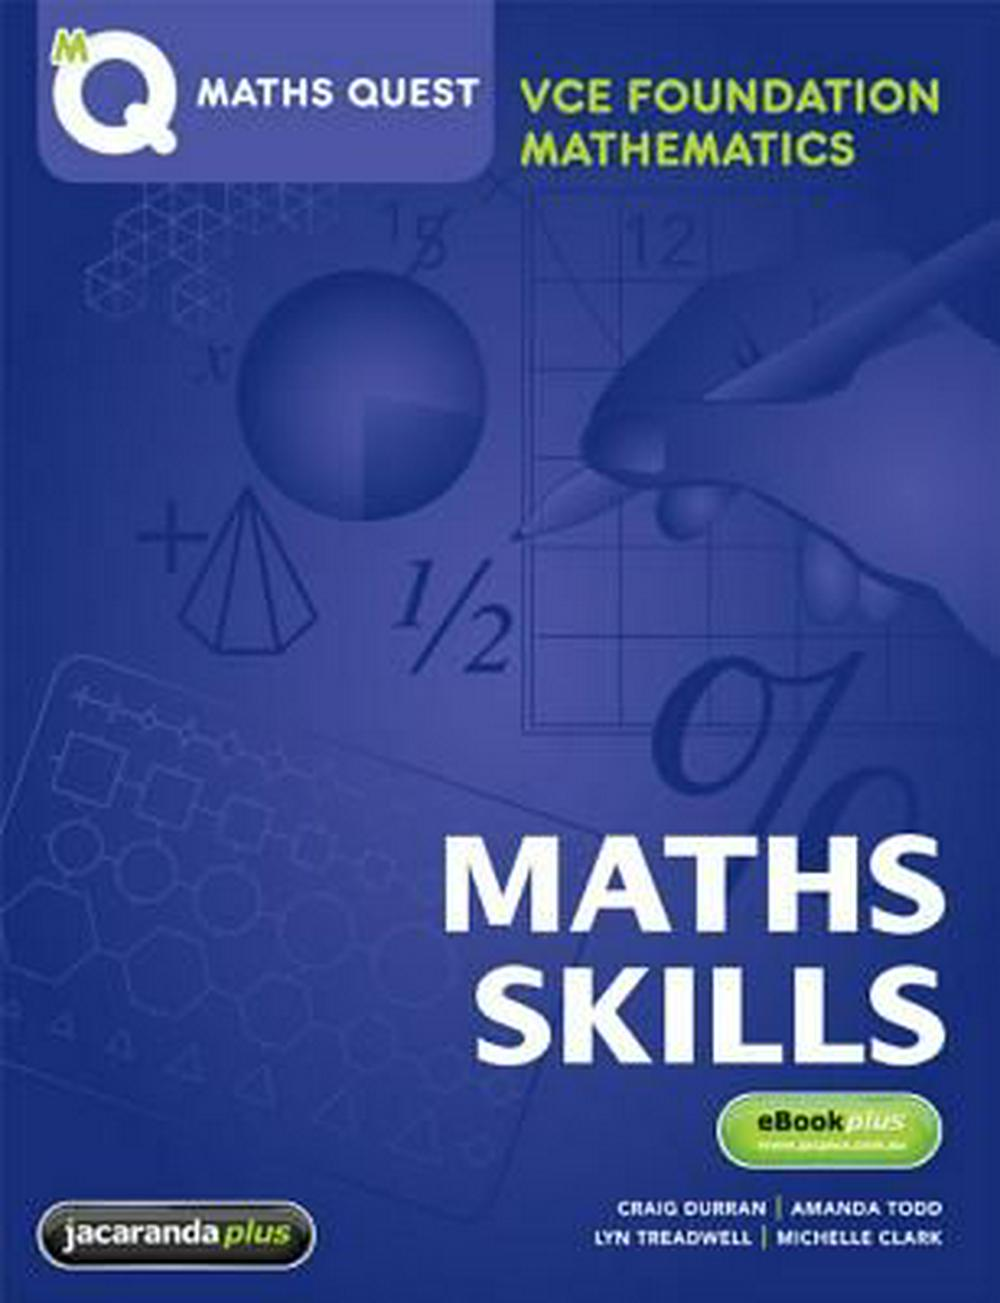 Maths Quest VCE Foundation Mathematics by Jacaranda, ISBN: 9781742160931